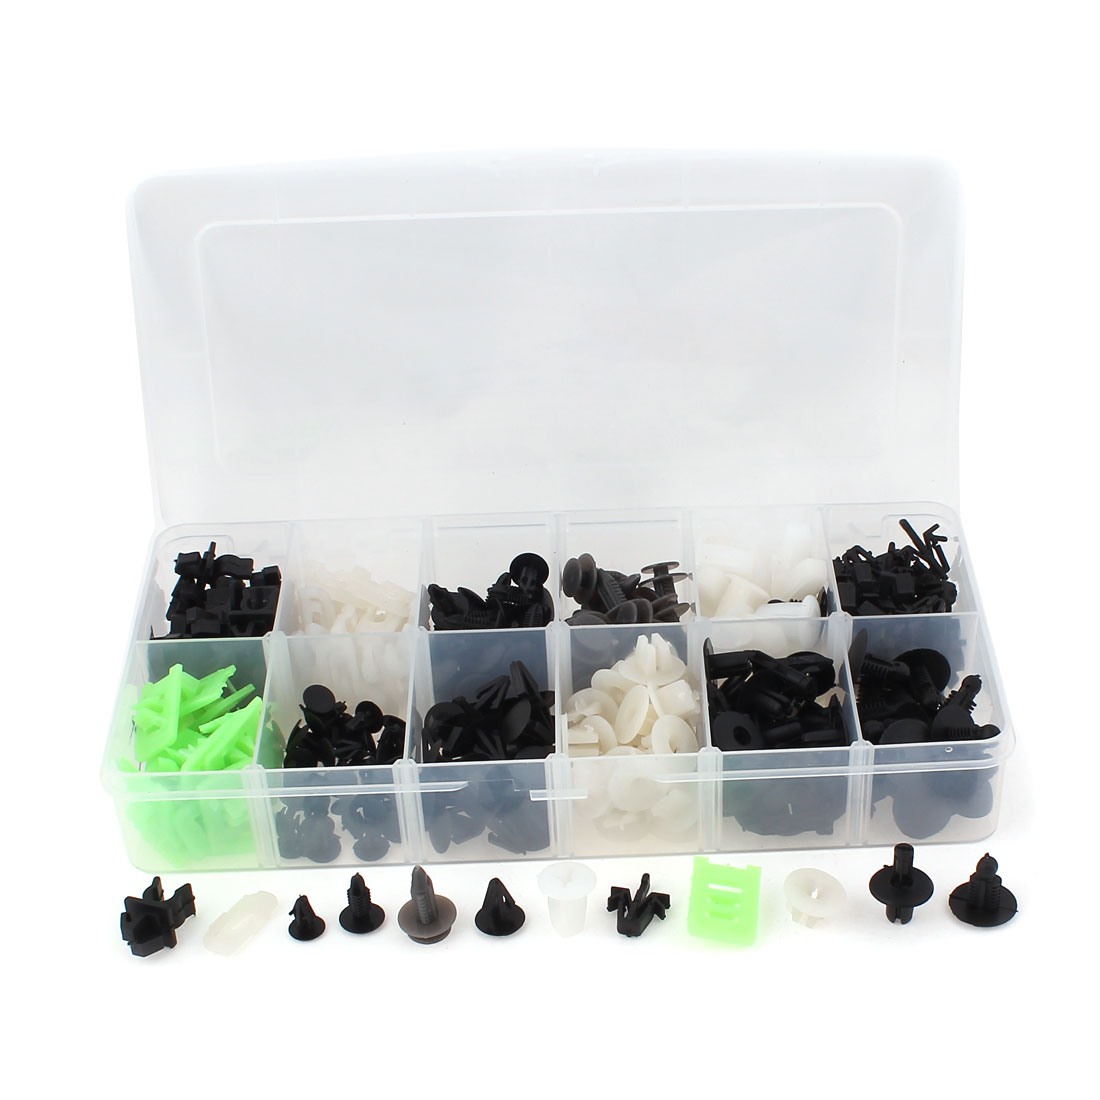 290 Pcs in 1 Assorted Color Plastic Rivets Fasteners Retainer Clips for Toyota